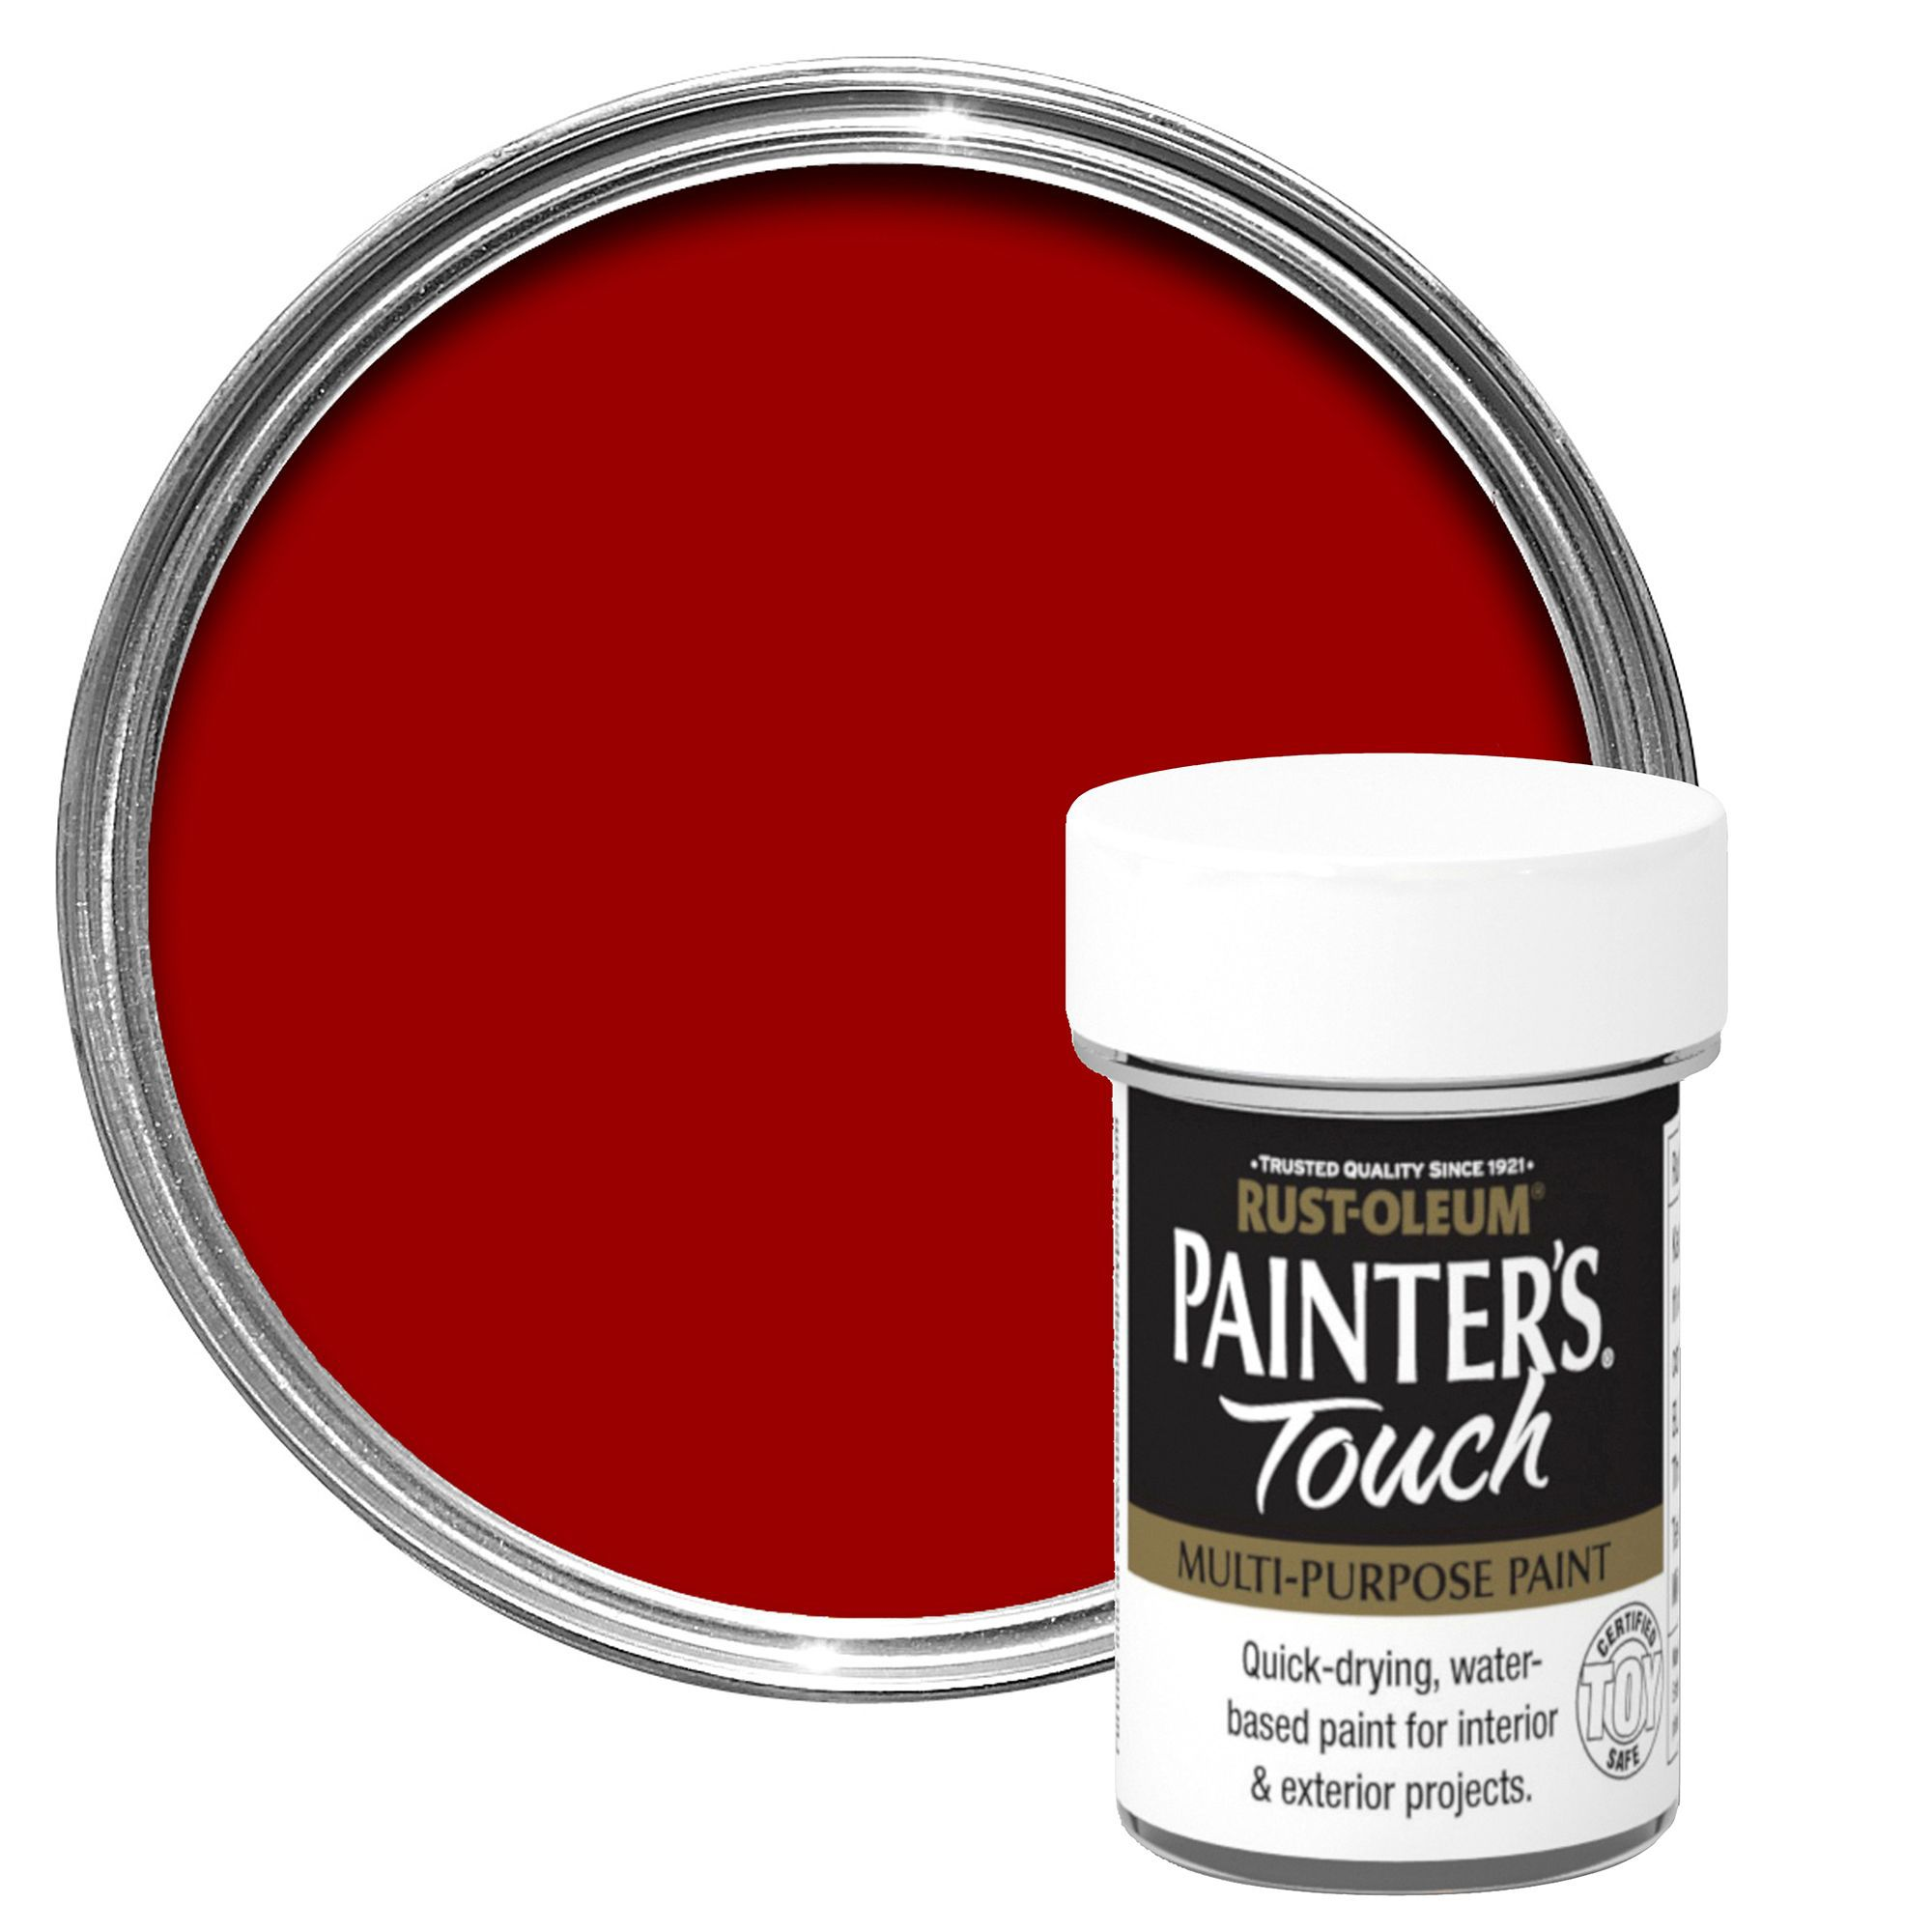 Rust-oleum Painter's Touch Interior & Exterior Deep Red Gloss Multipurpose Paint 20ml